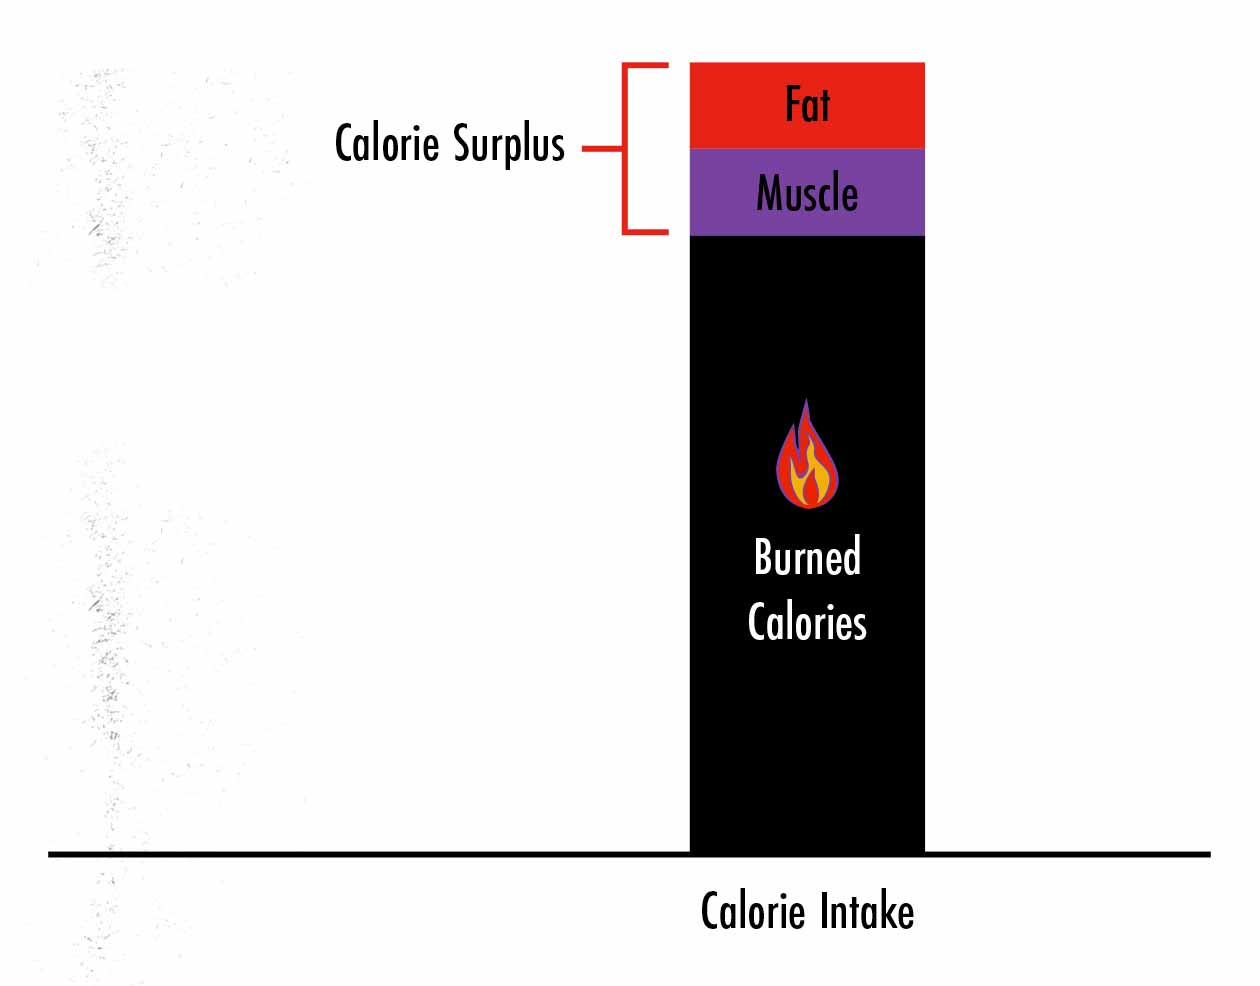 Graph showing the amount of muscle and fat gain while bulking.